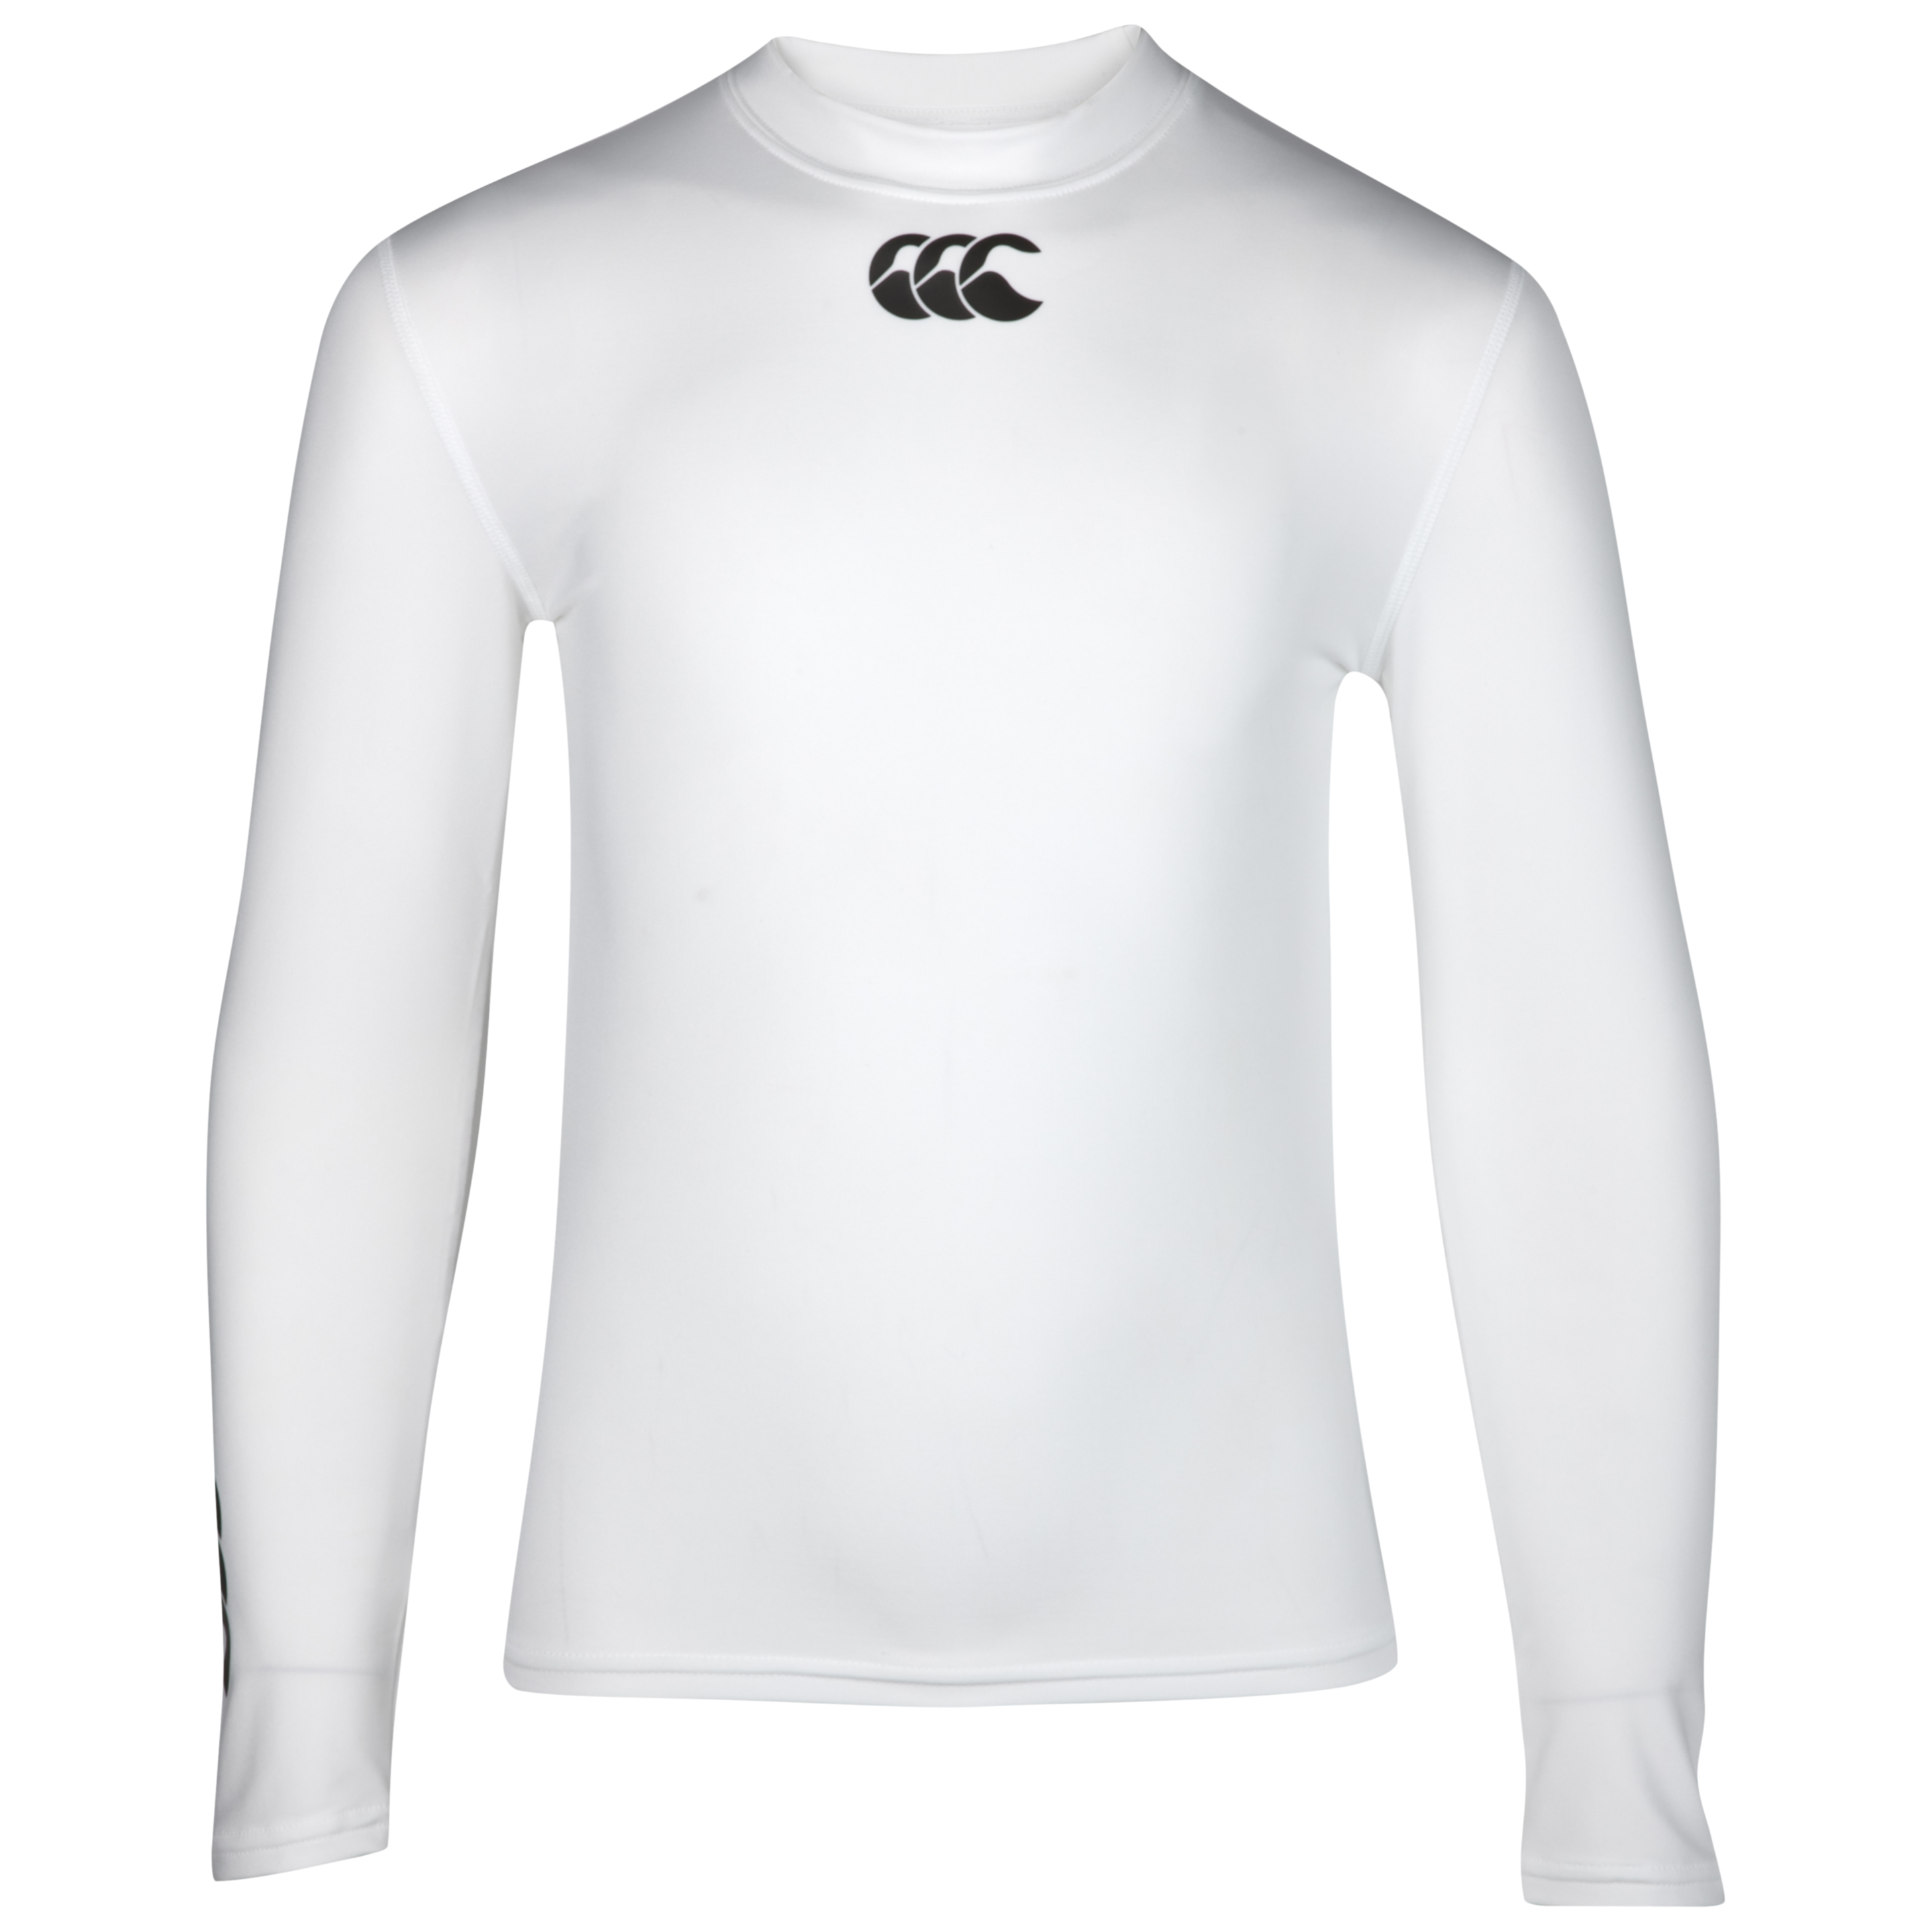 Canterbury Hot Long Sleeve Baselayer Top - Kids - White